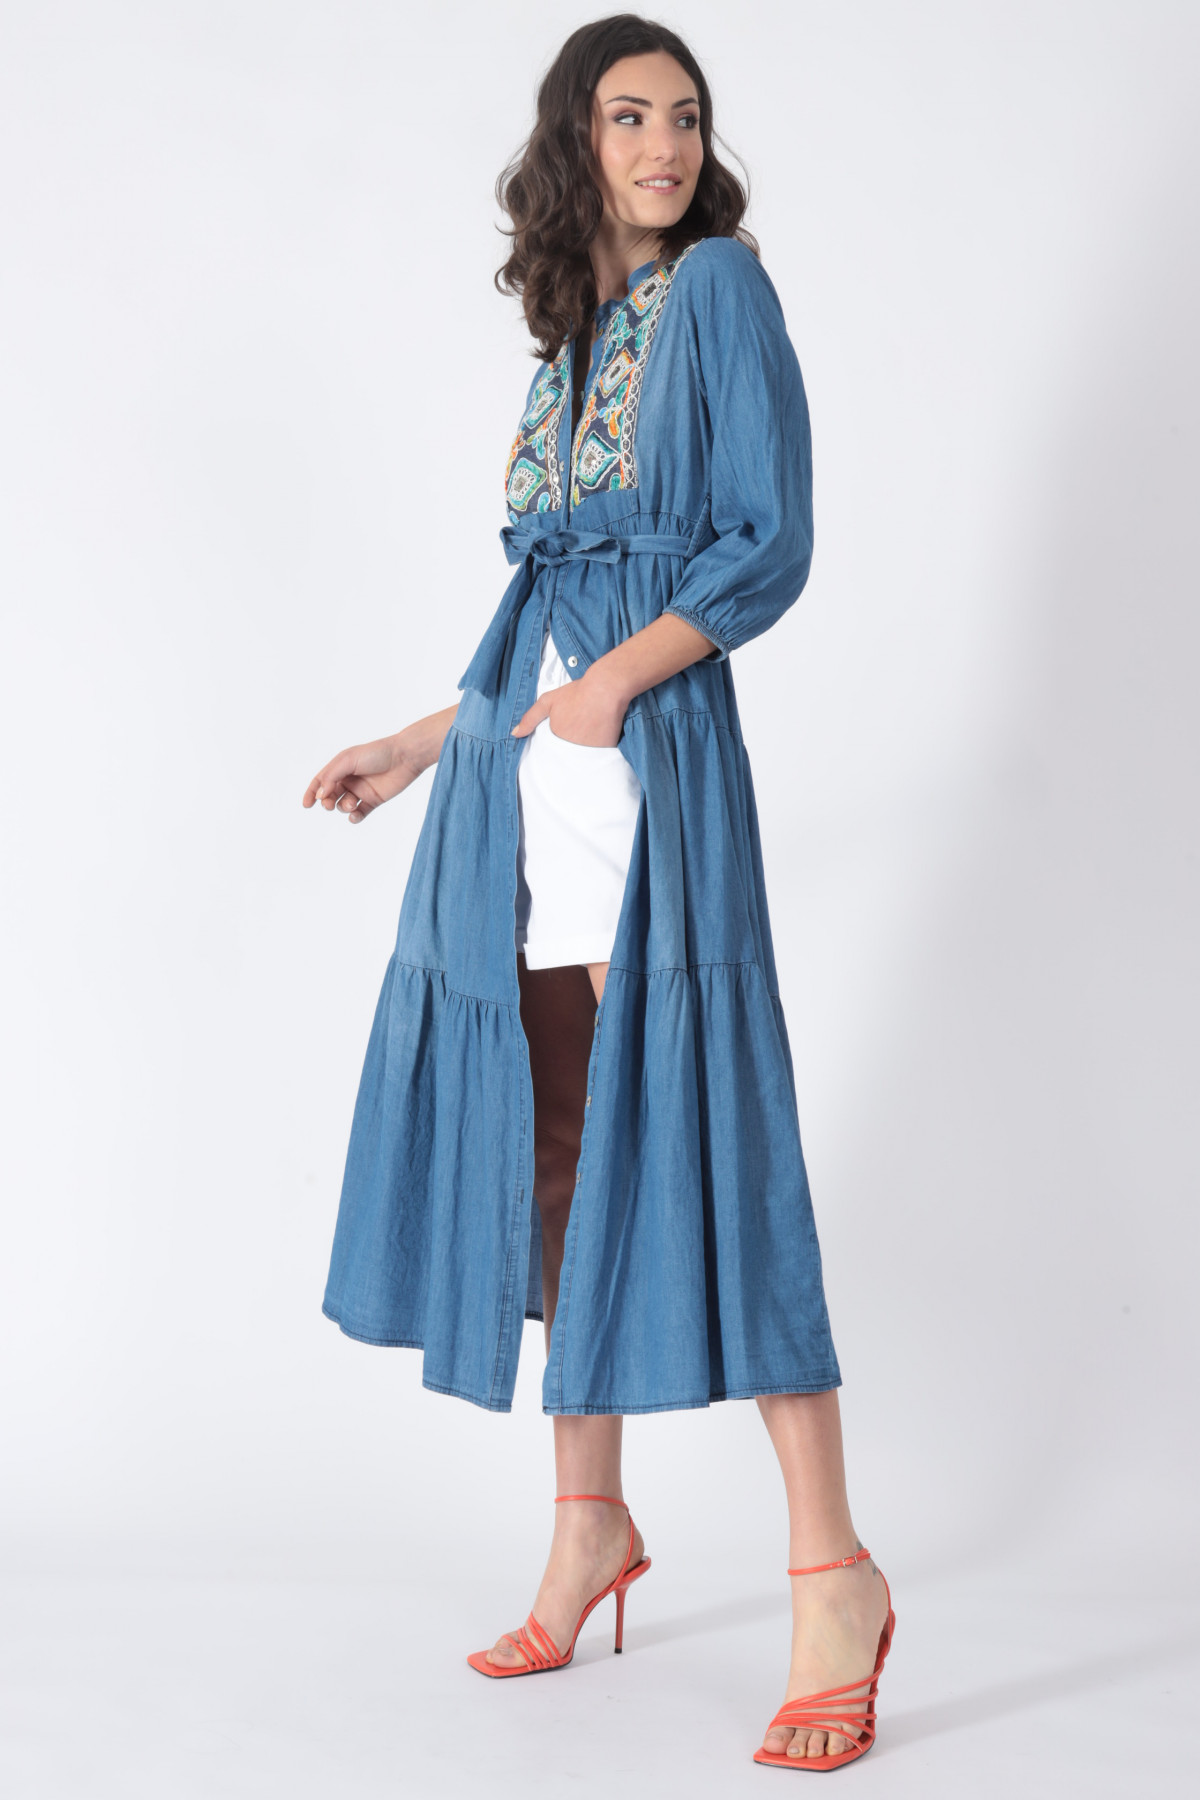 Chambray Dress with Embroidery on the Chest